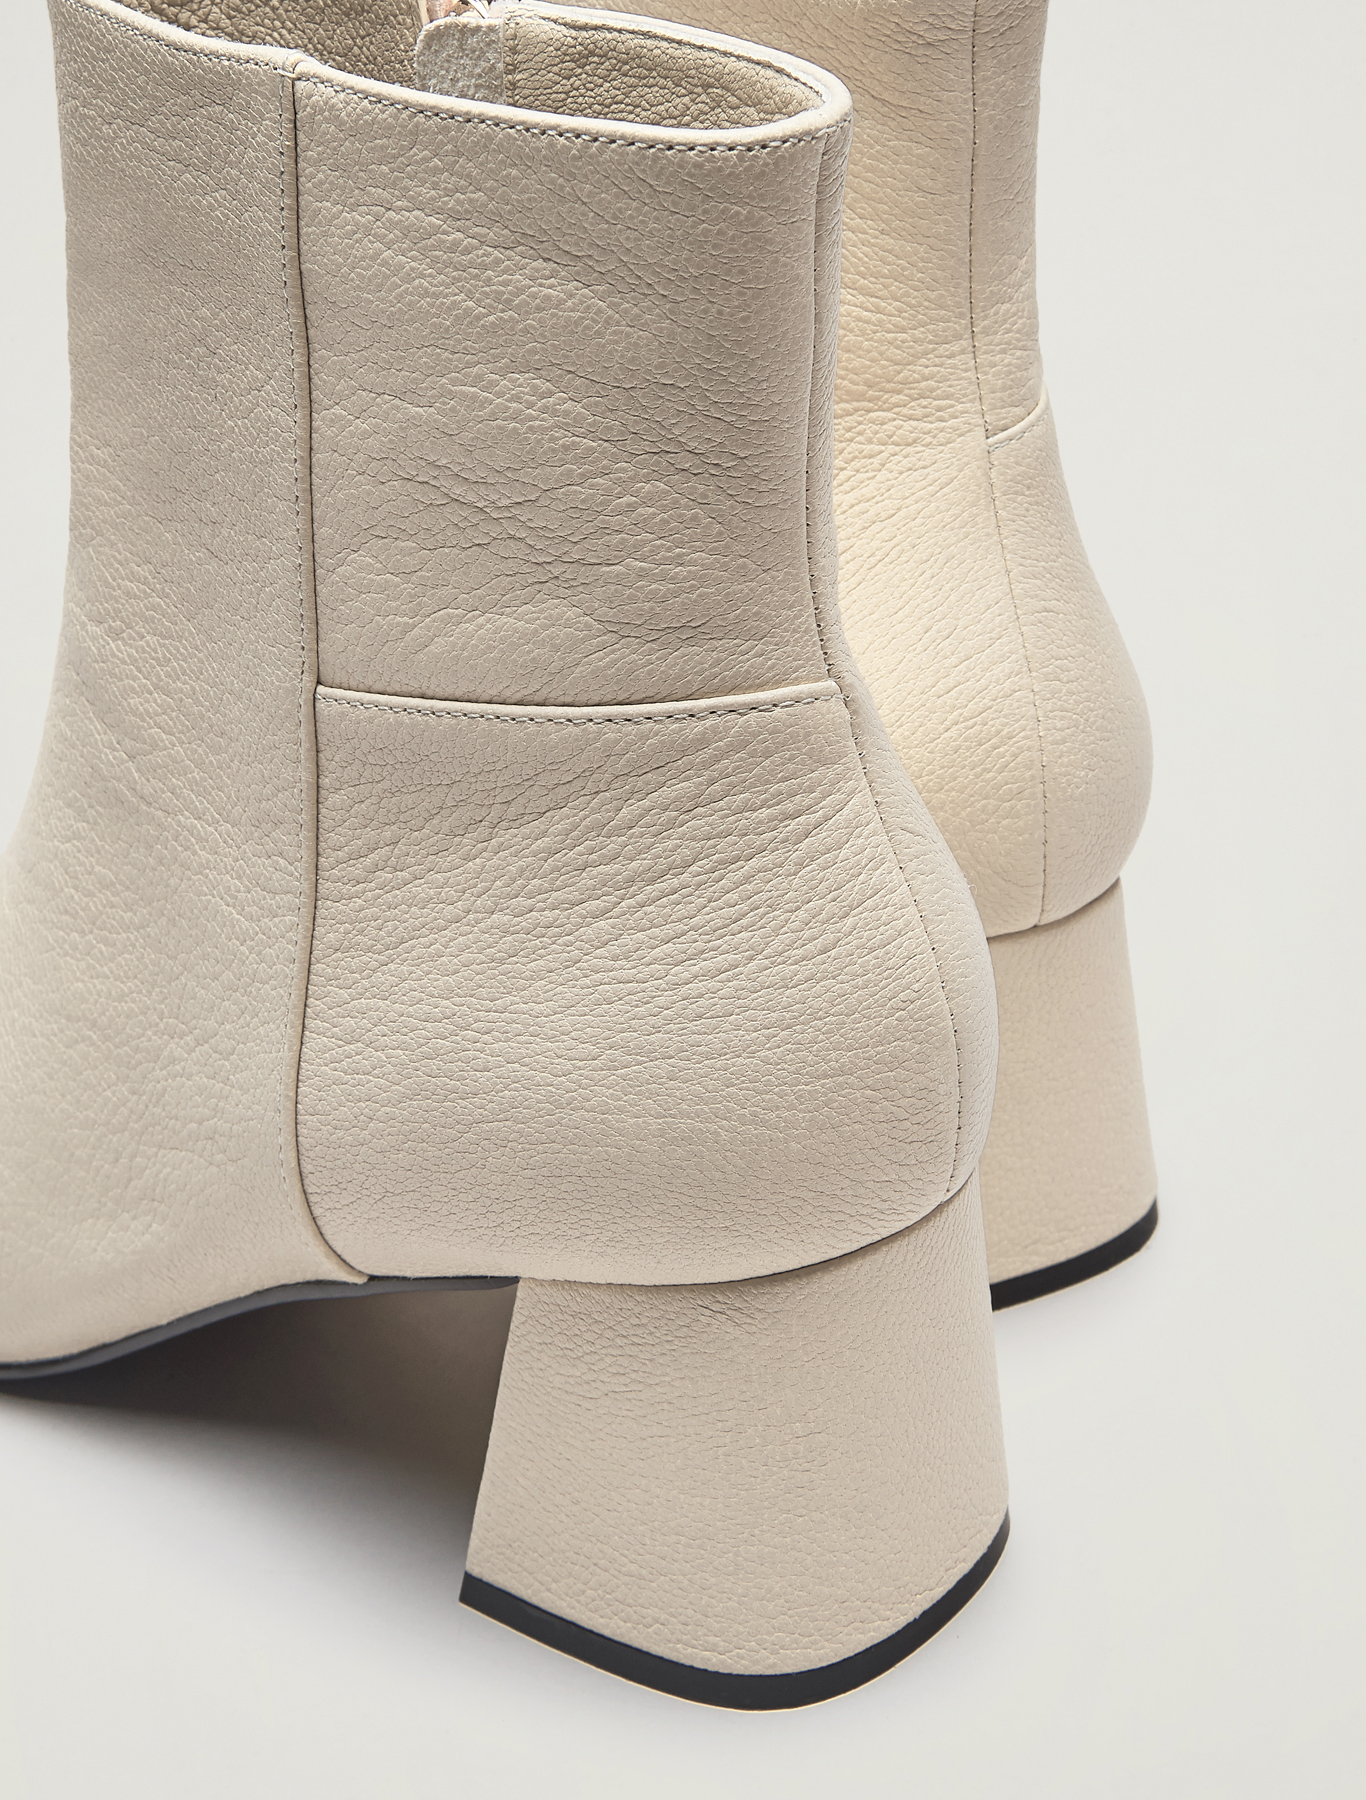 Nappa leather ankle boots - ivory - pennyblack